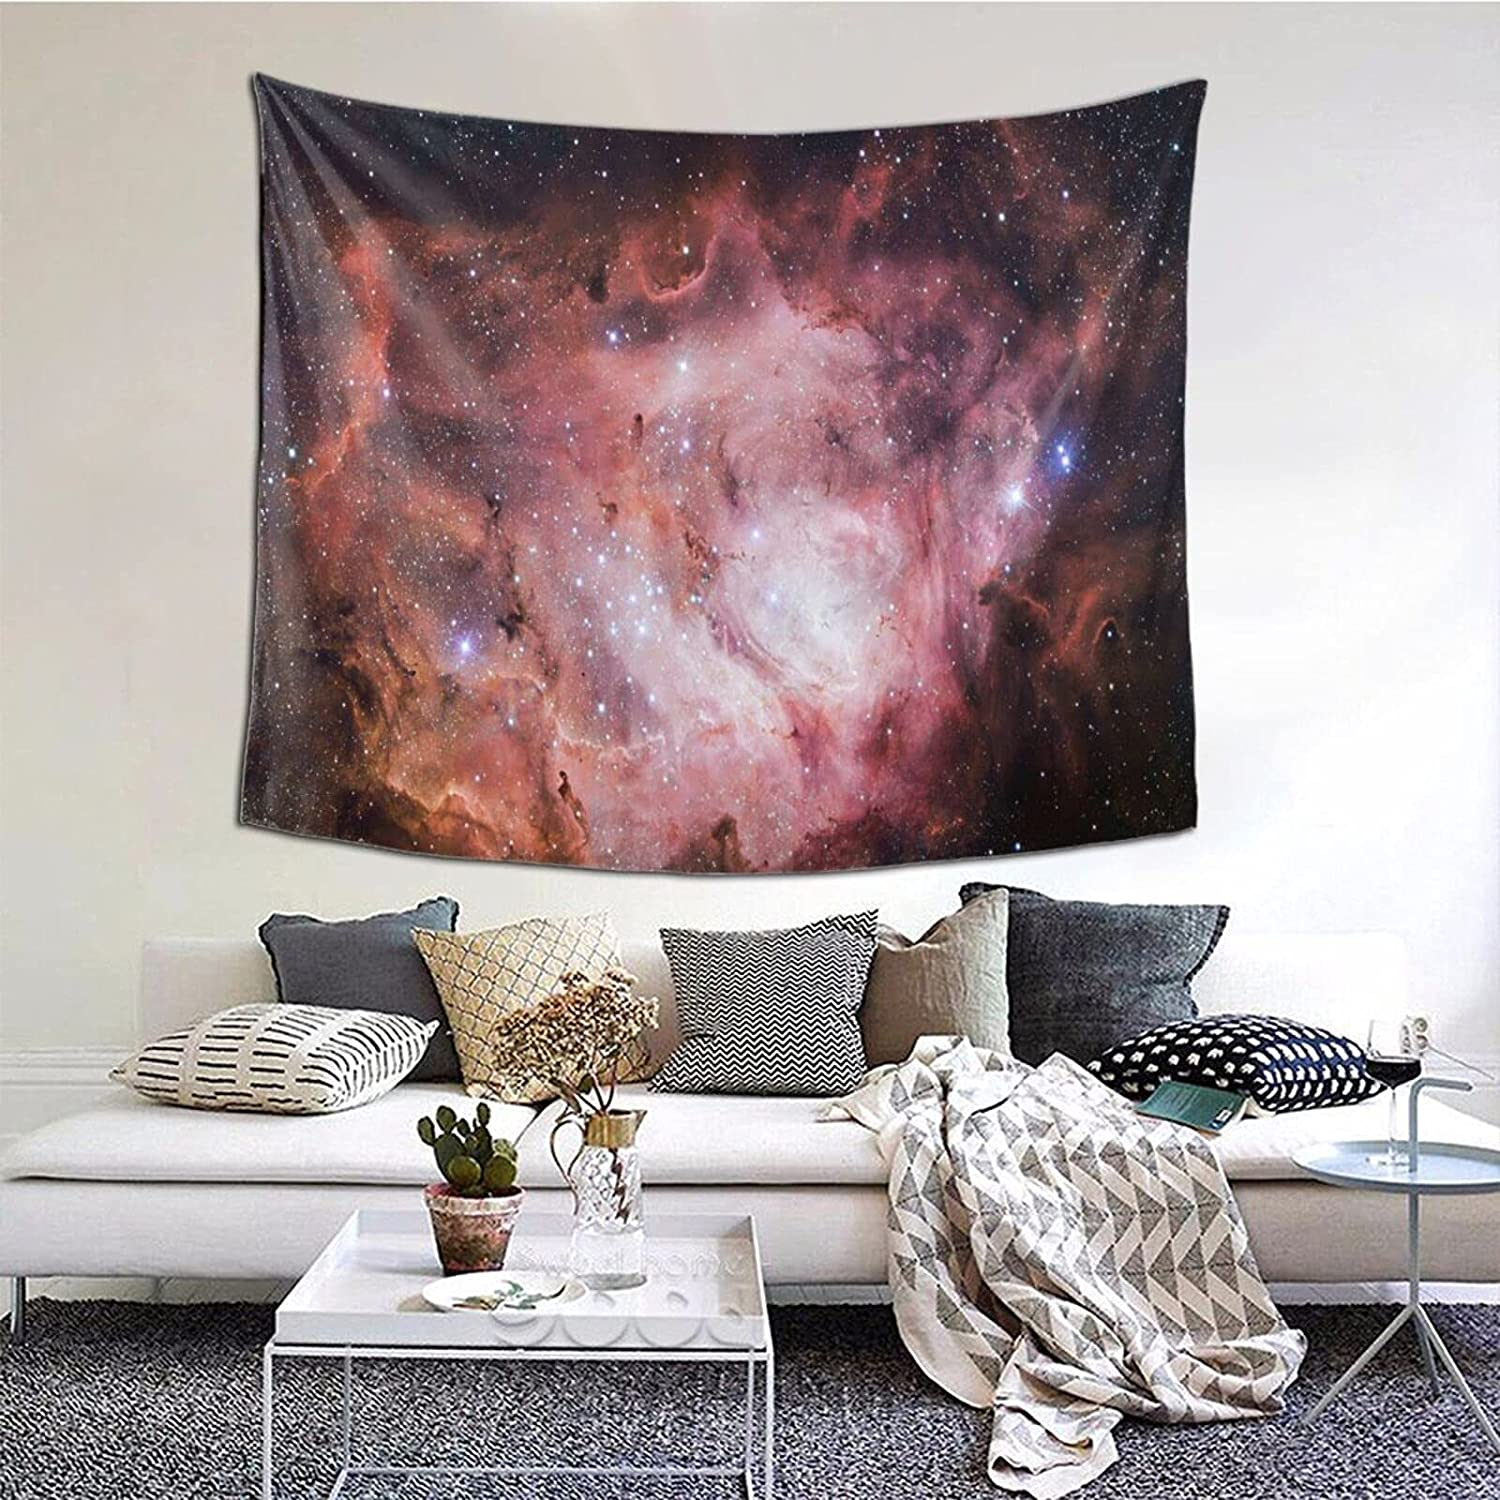 Space Collection Tapestry 60 Max 70% OFF National uniform free shipping 51 Multiple Colorful Ta Inch Hippie